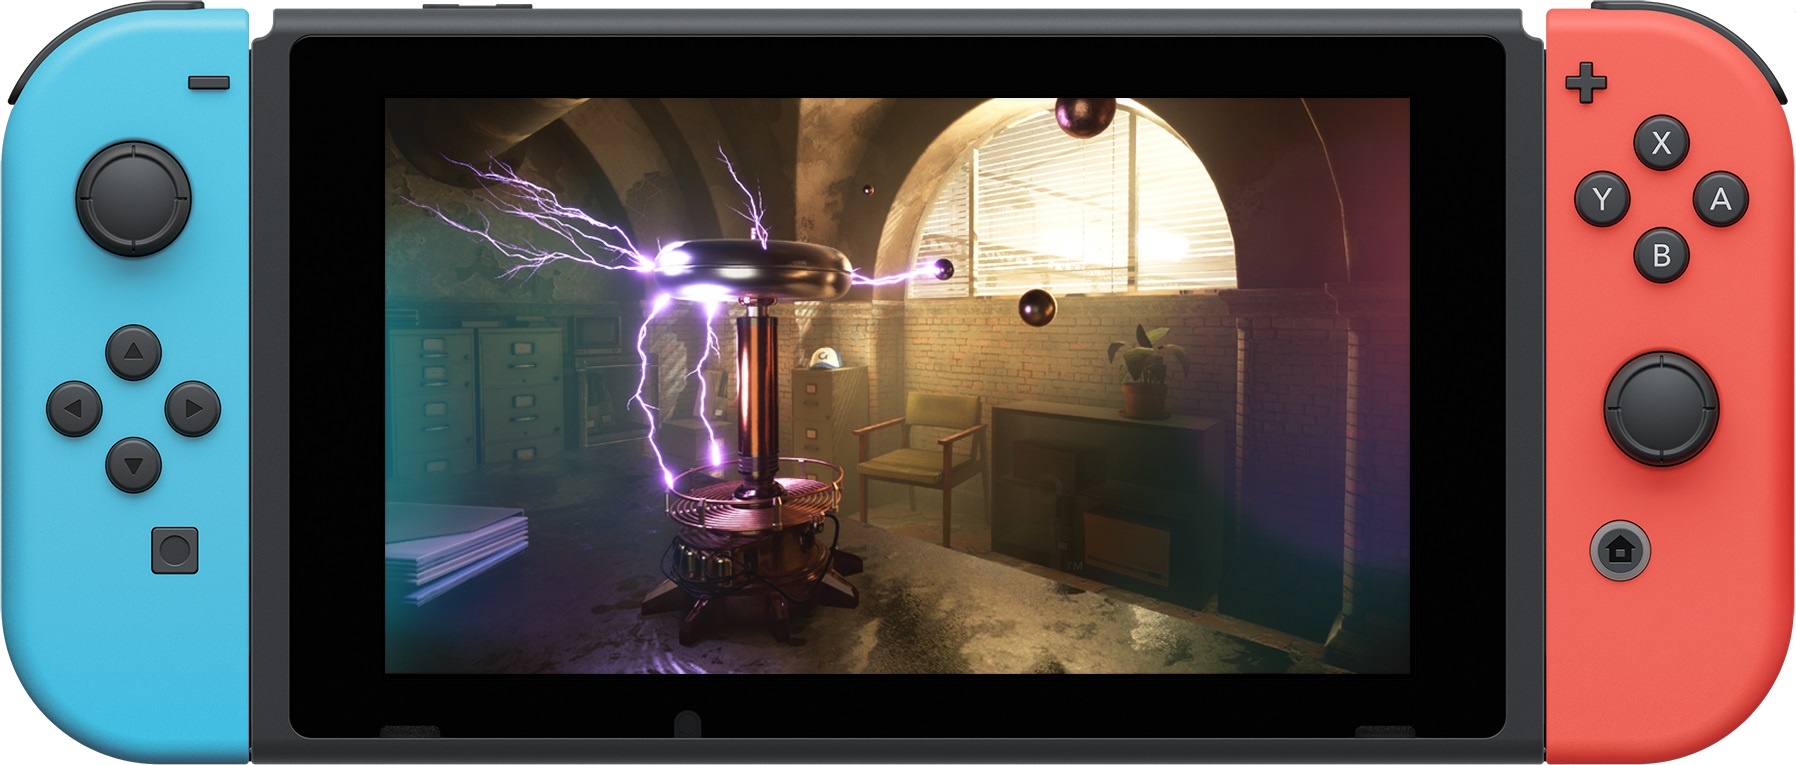 Unreal Engine 4 21 adds support for Niagara effects on